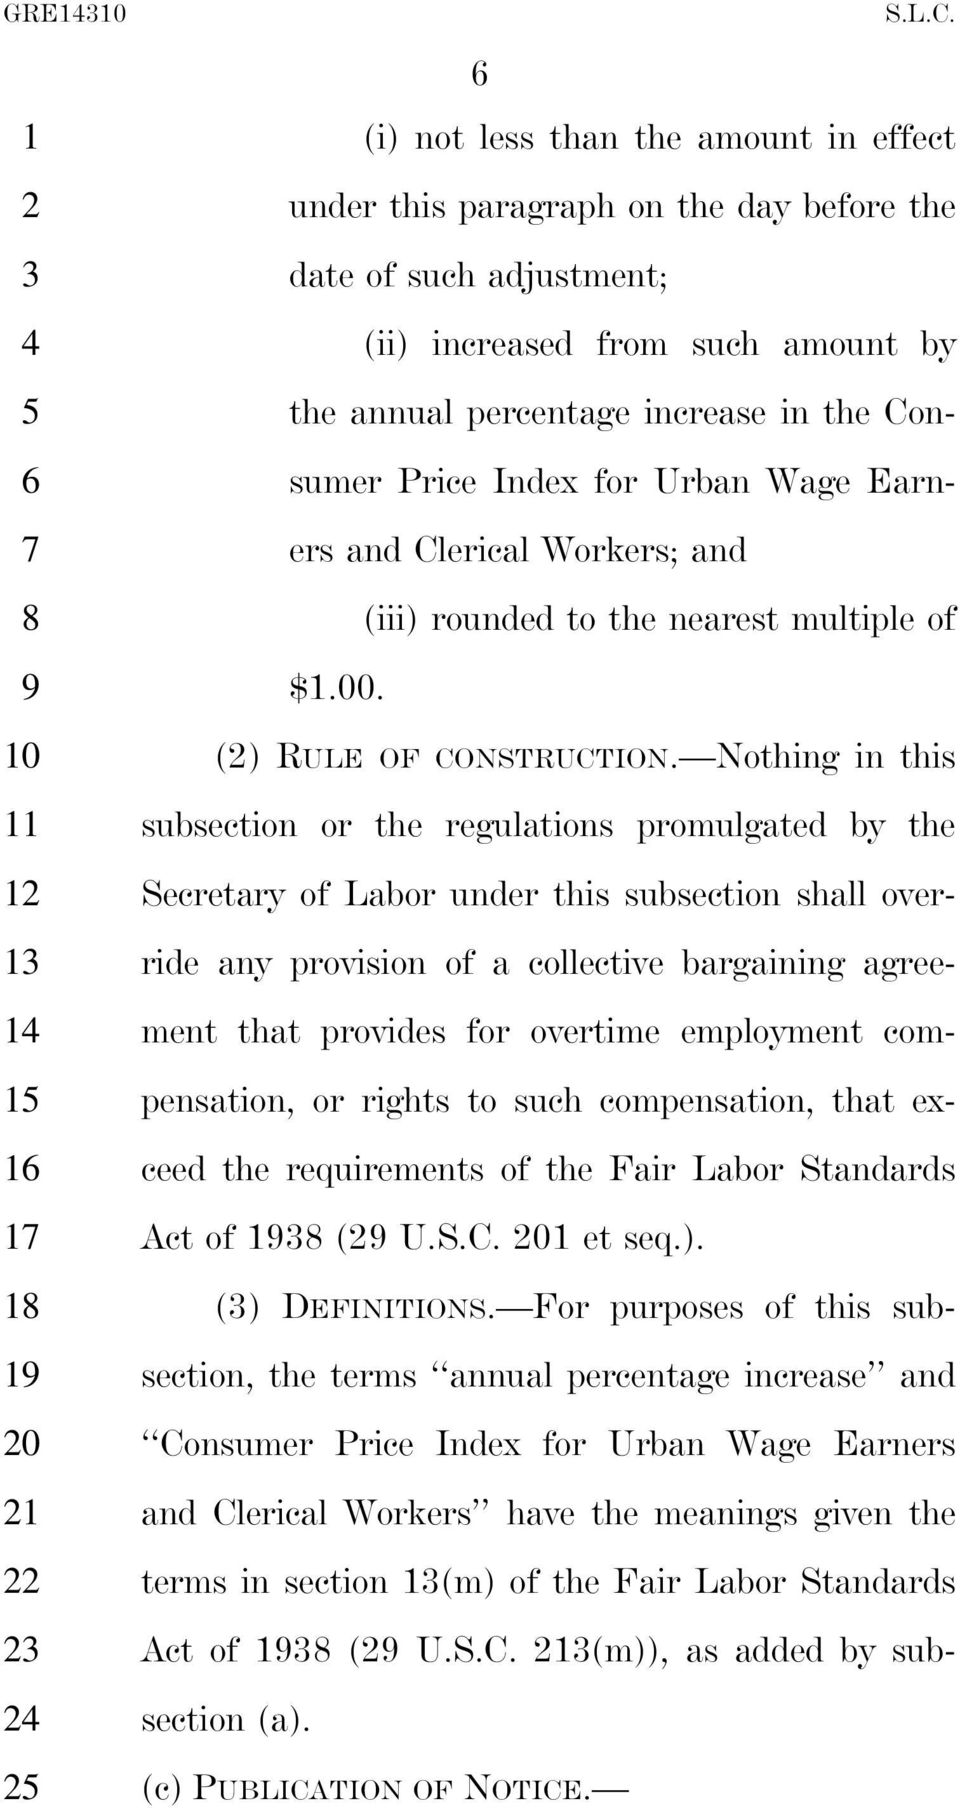 Nothing in this subsection or the regulations promulgated by the Secretary of Labor under this subsection shall override any provision of a collective bargaining agreement that provides for overtime